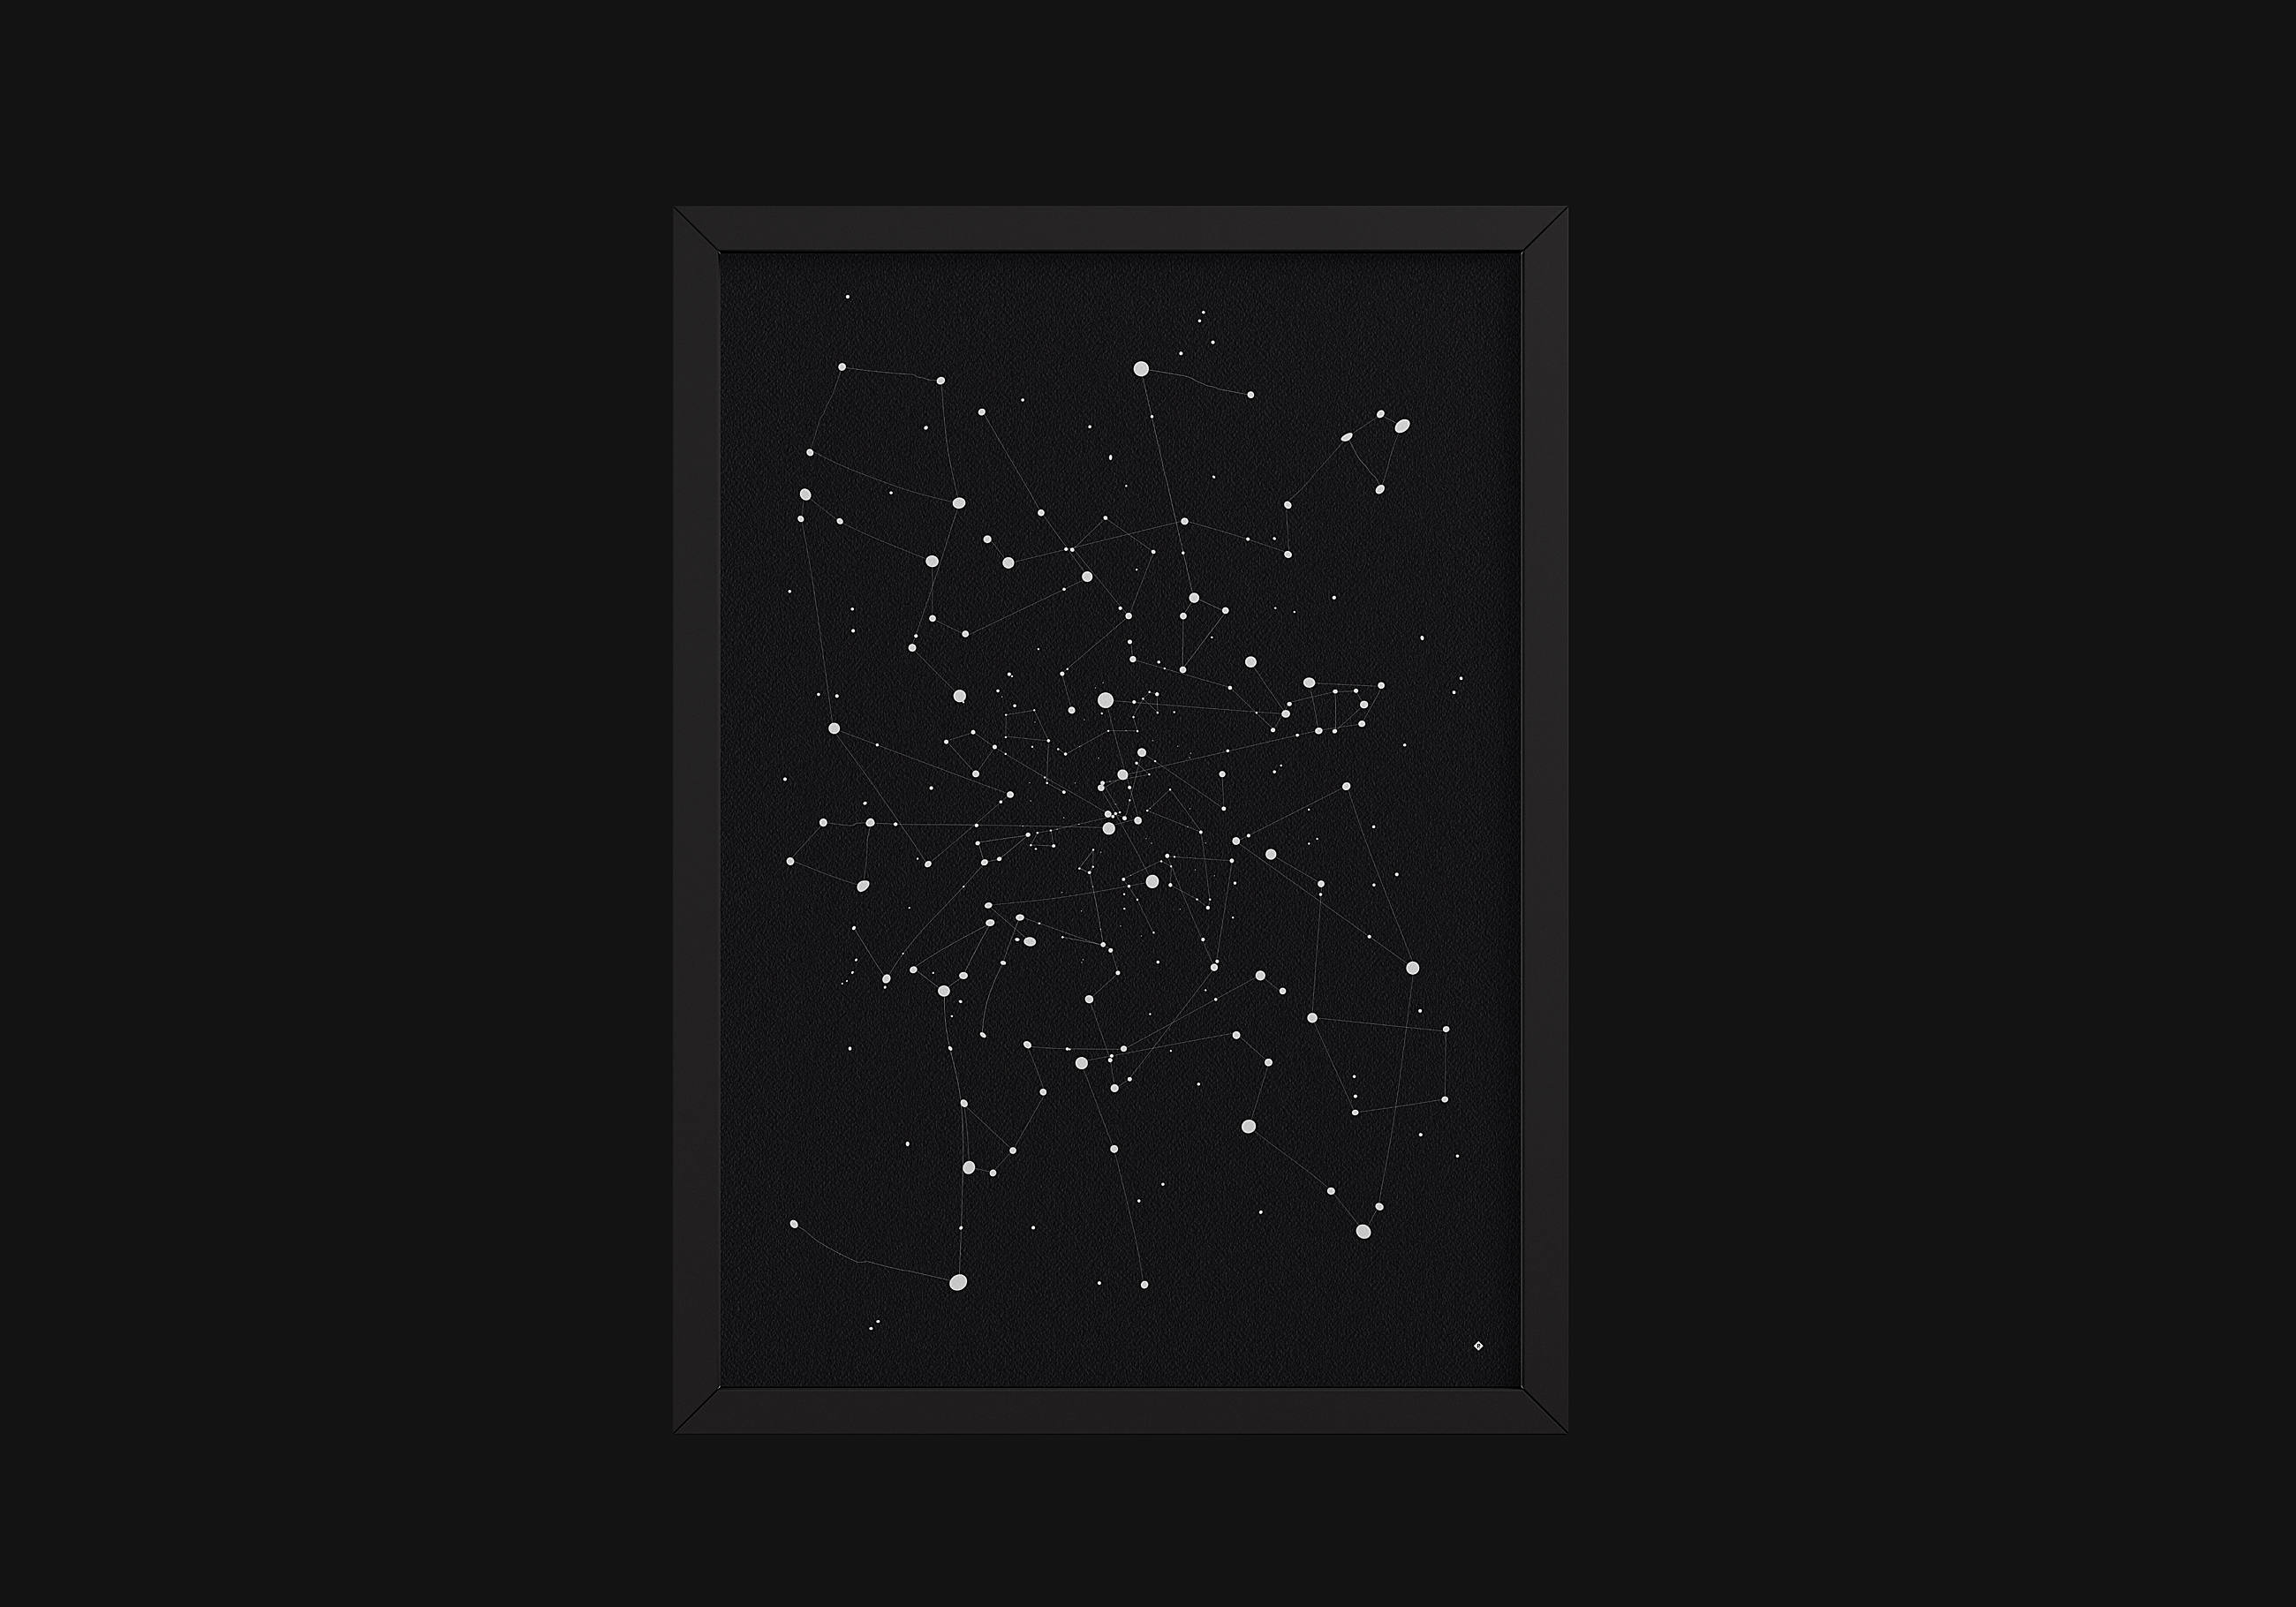 Constellation III